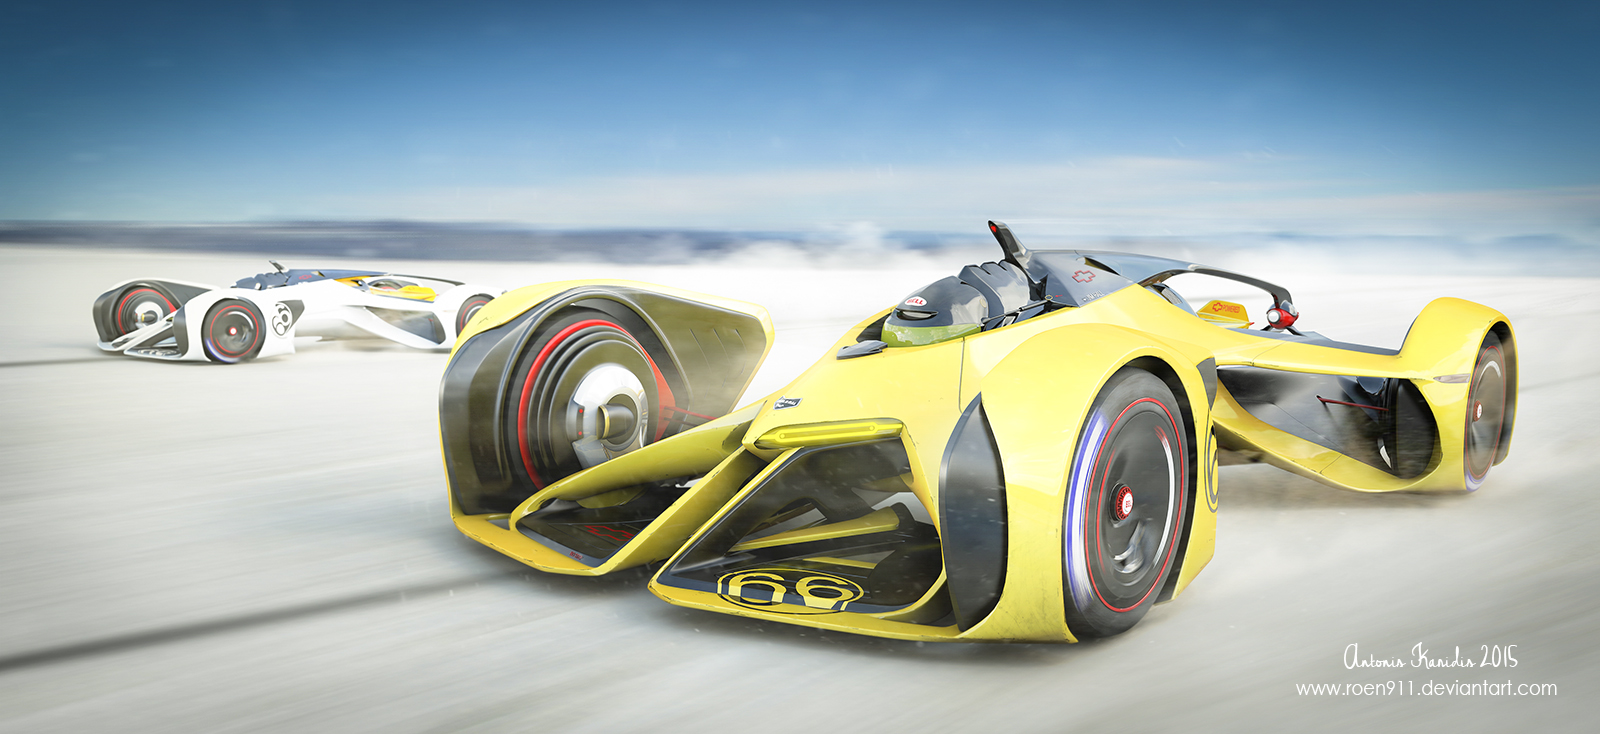 Chaparral Racing 2X Vision by rOEN911